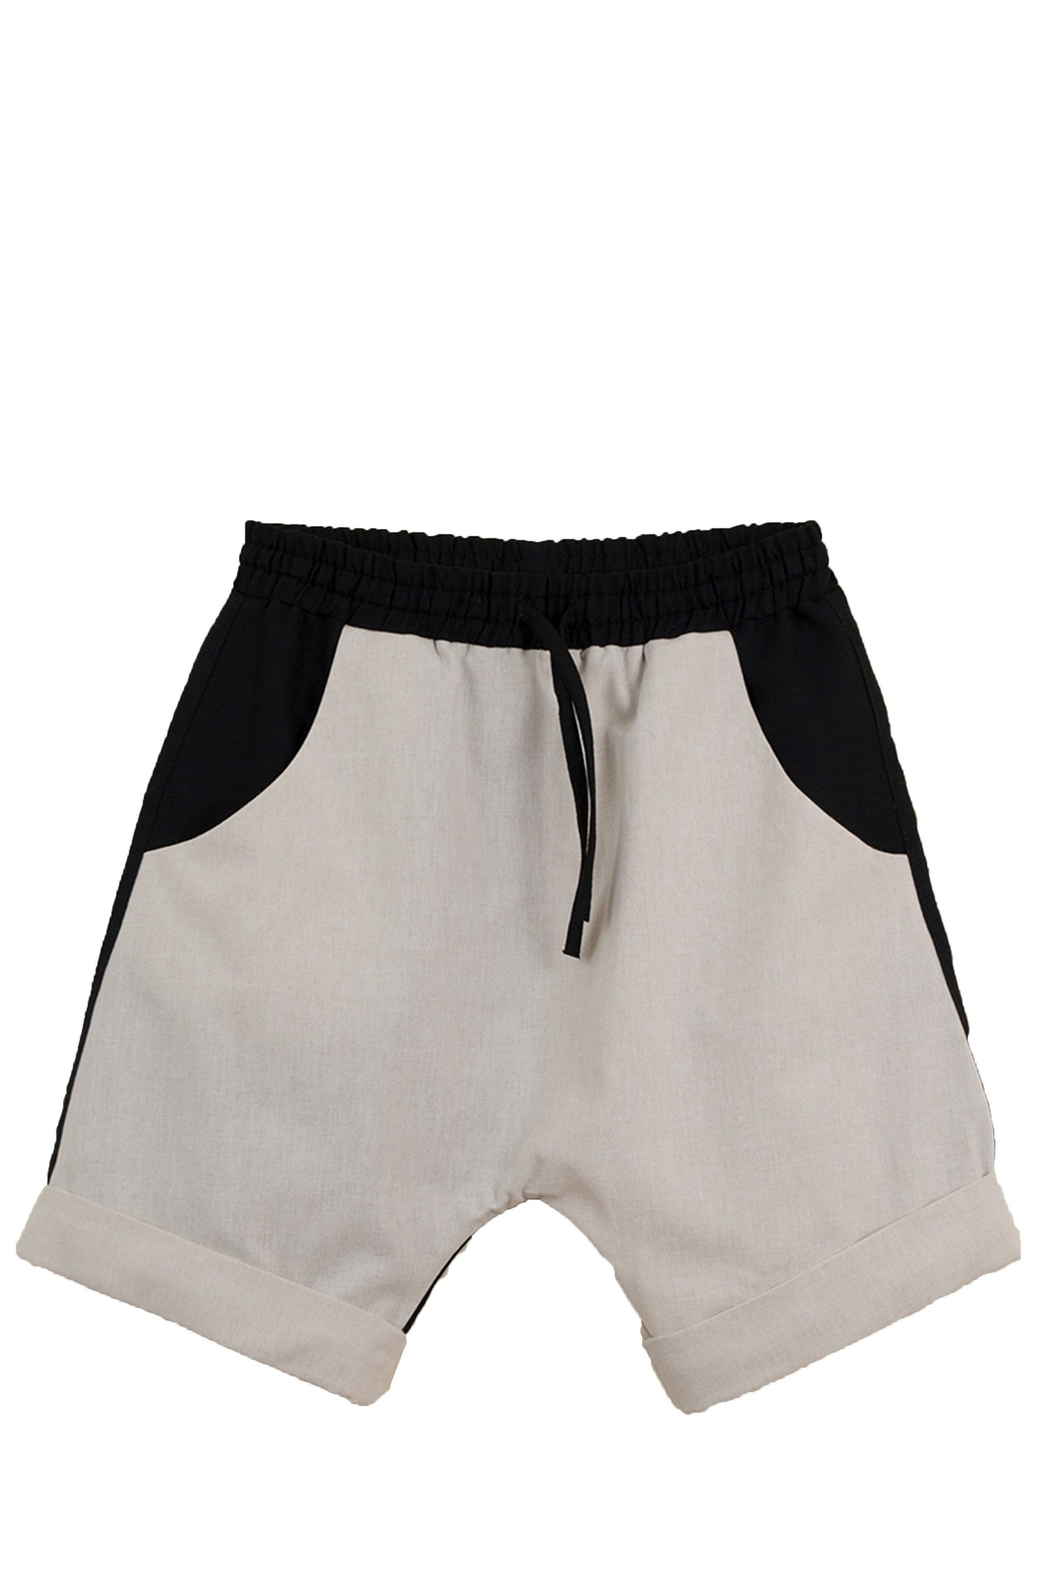 Popelin Boys Two -Tone Bermuda Shorts - Front Cropped Image